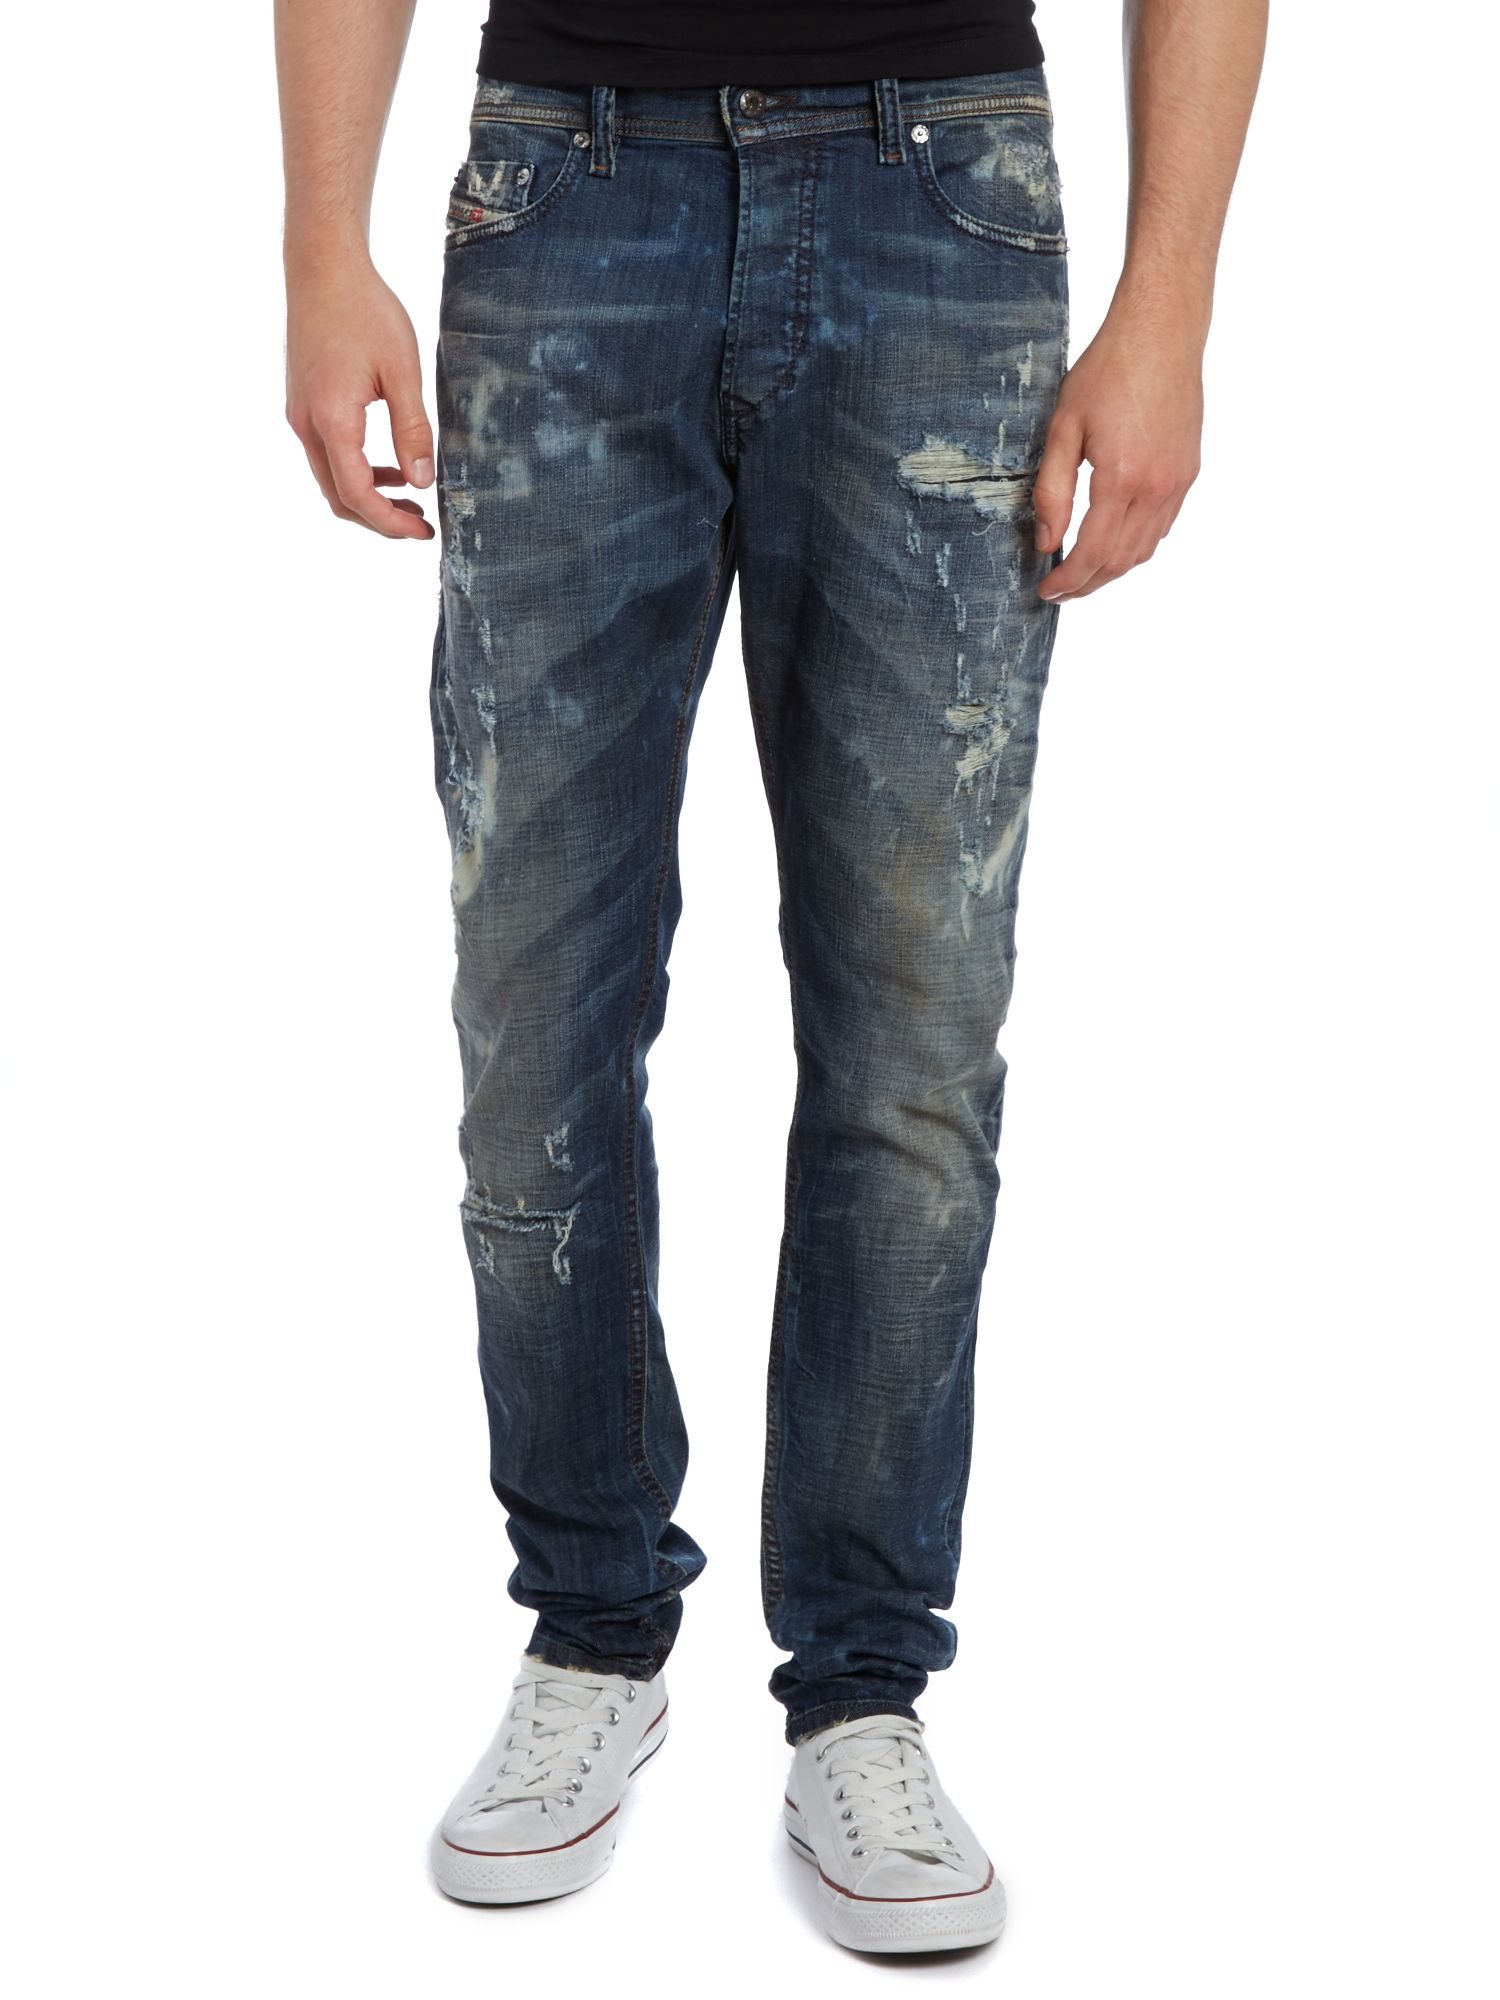 Tepphar 830k tapered carrot jeans